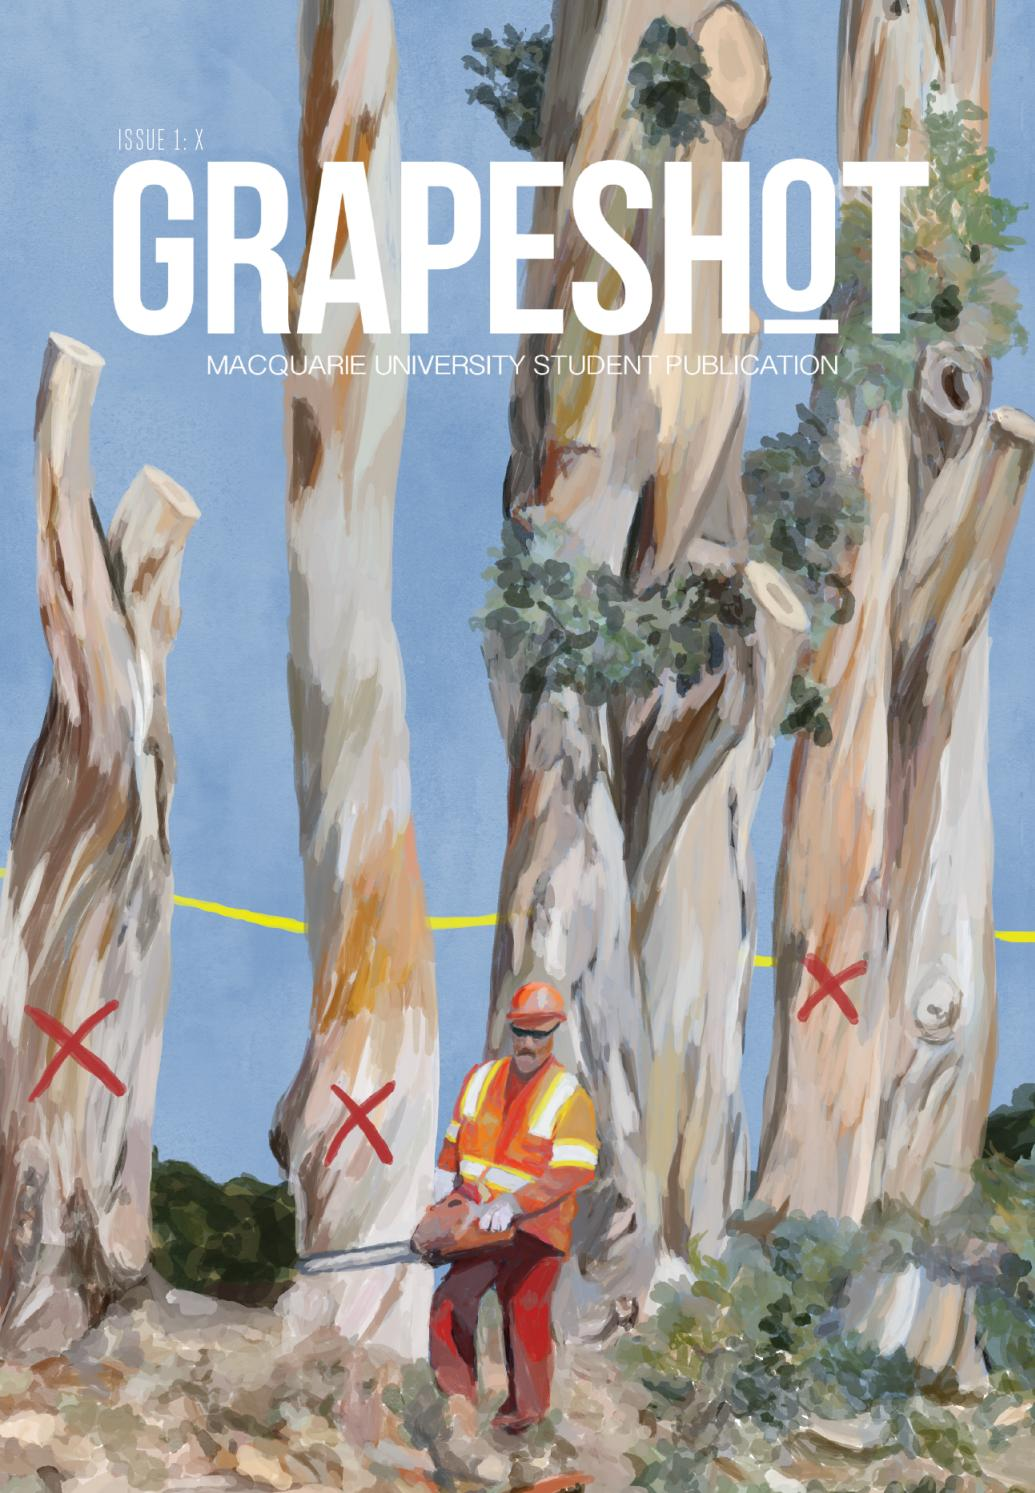 Grapeshot Magazine X By Grapeshot Magazine Issuu